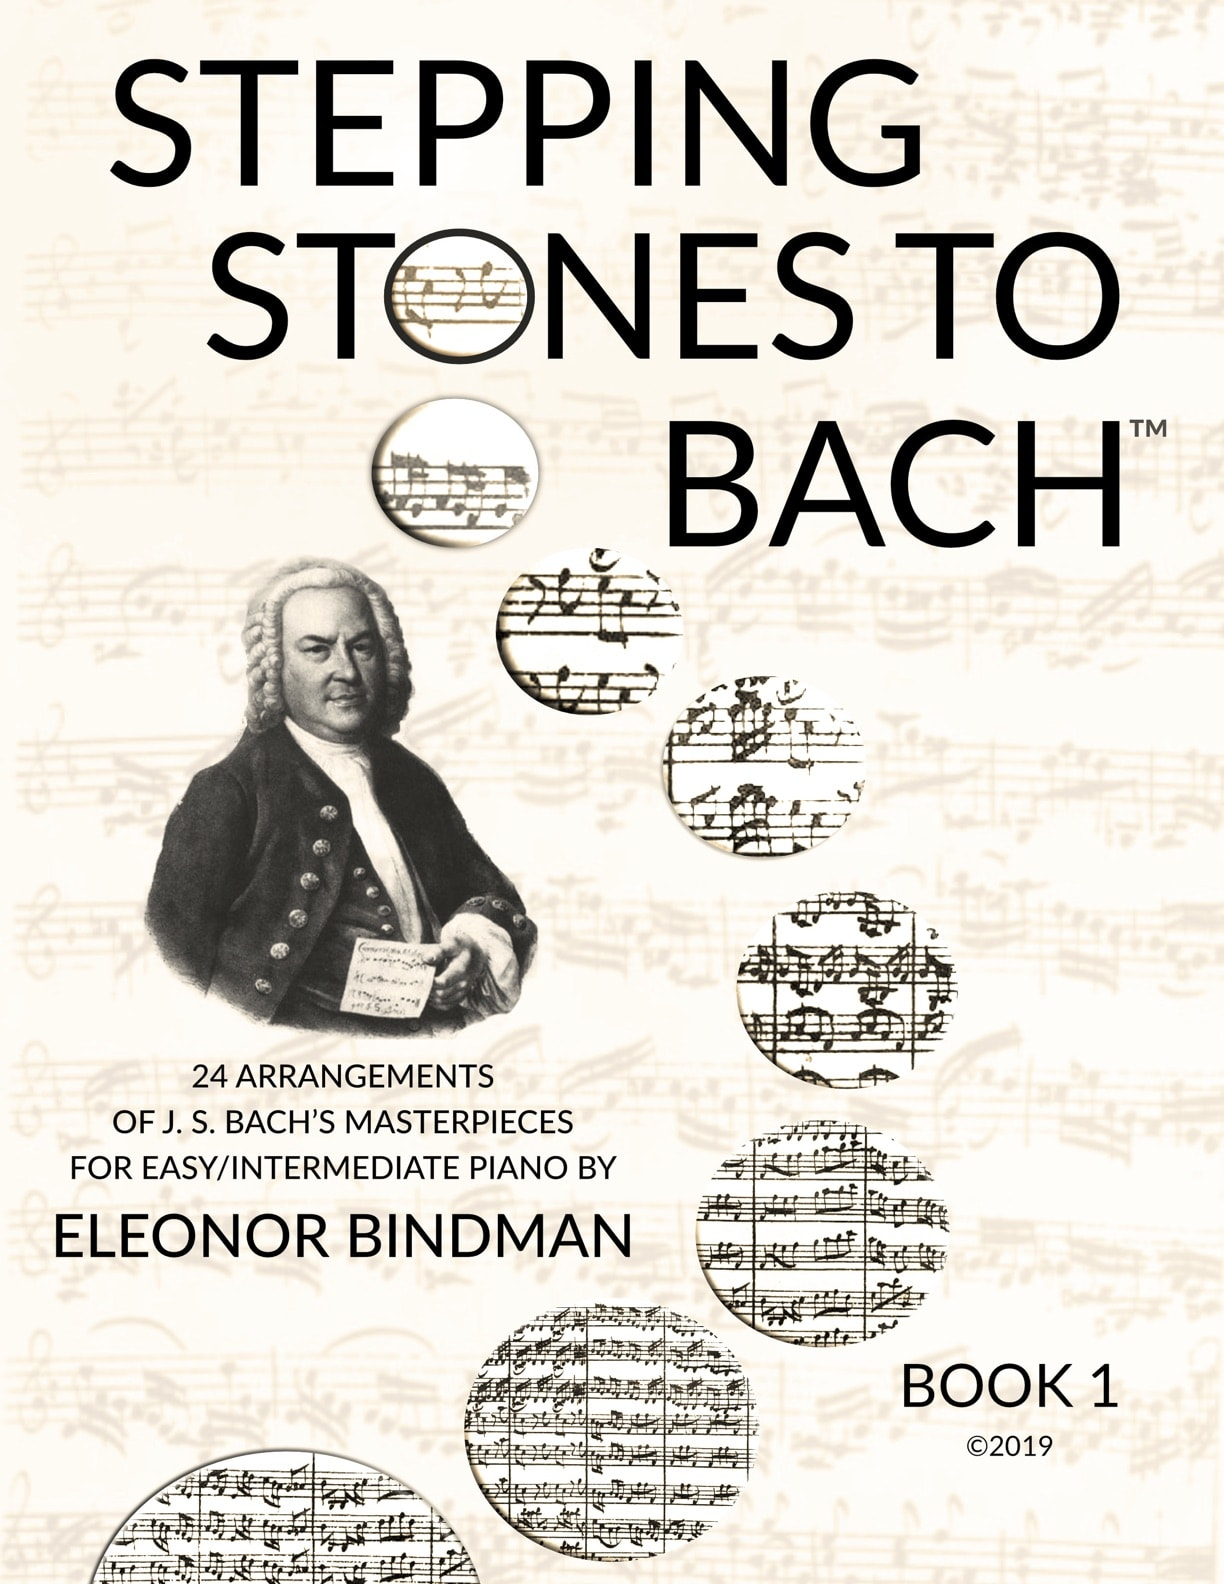 Stepping Stones to Bach Book Cover